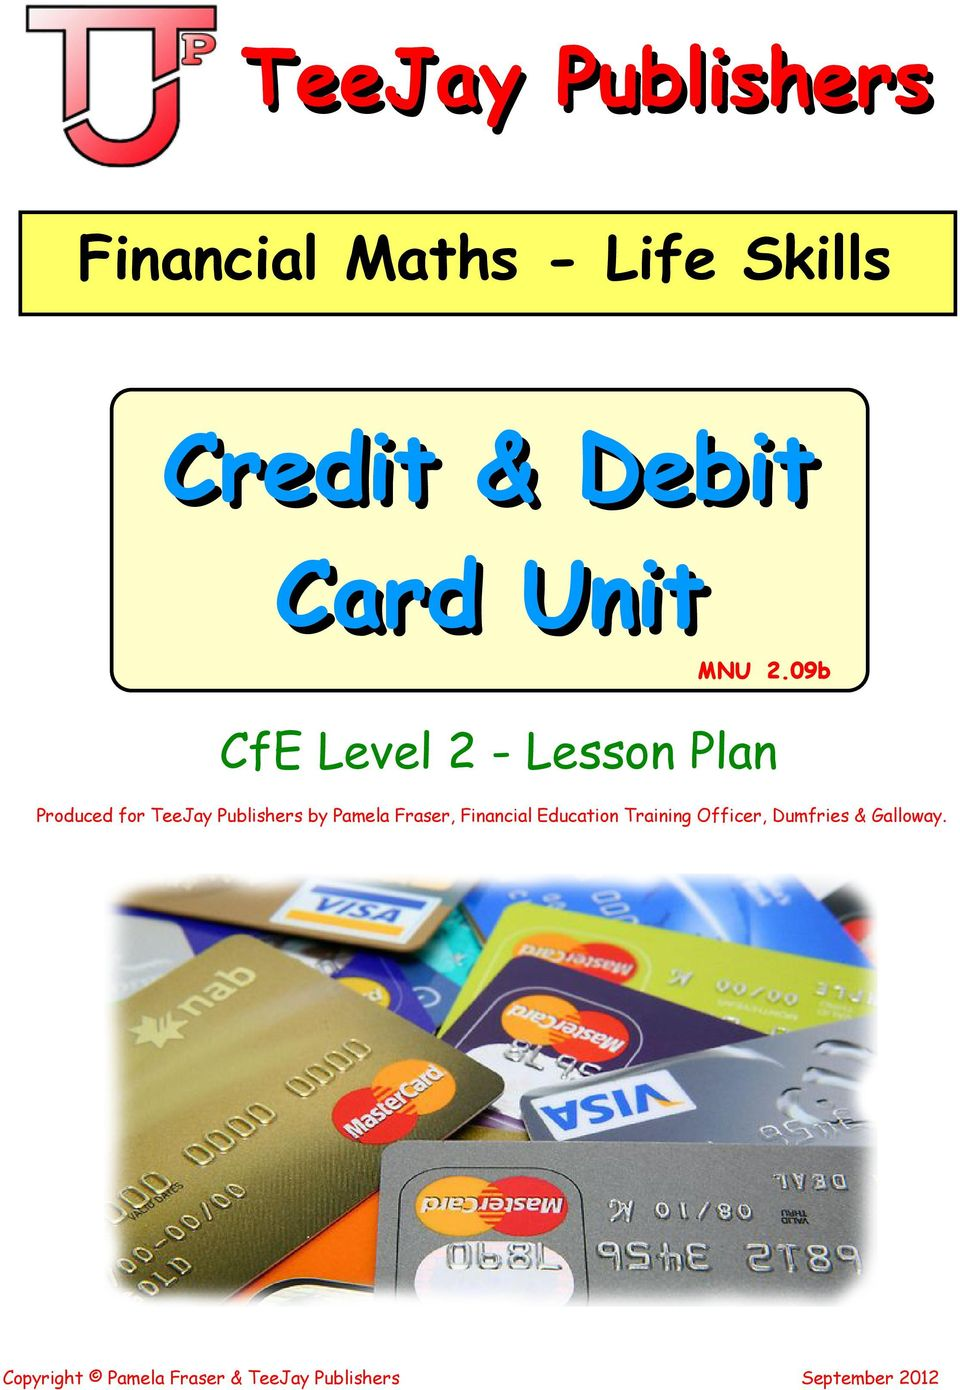 09b CfE Level 2 - Lesson Plan Produced for TeeJay